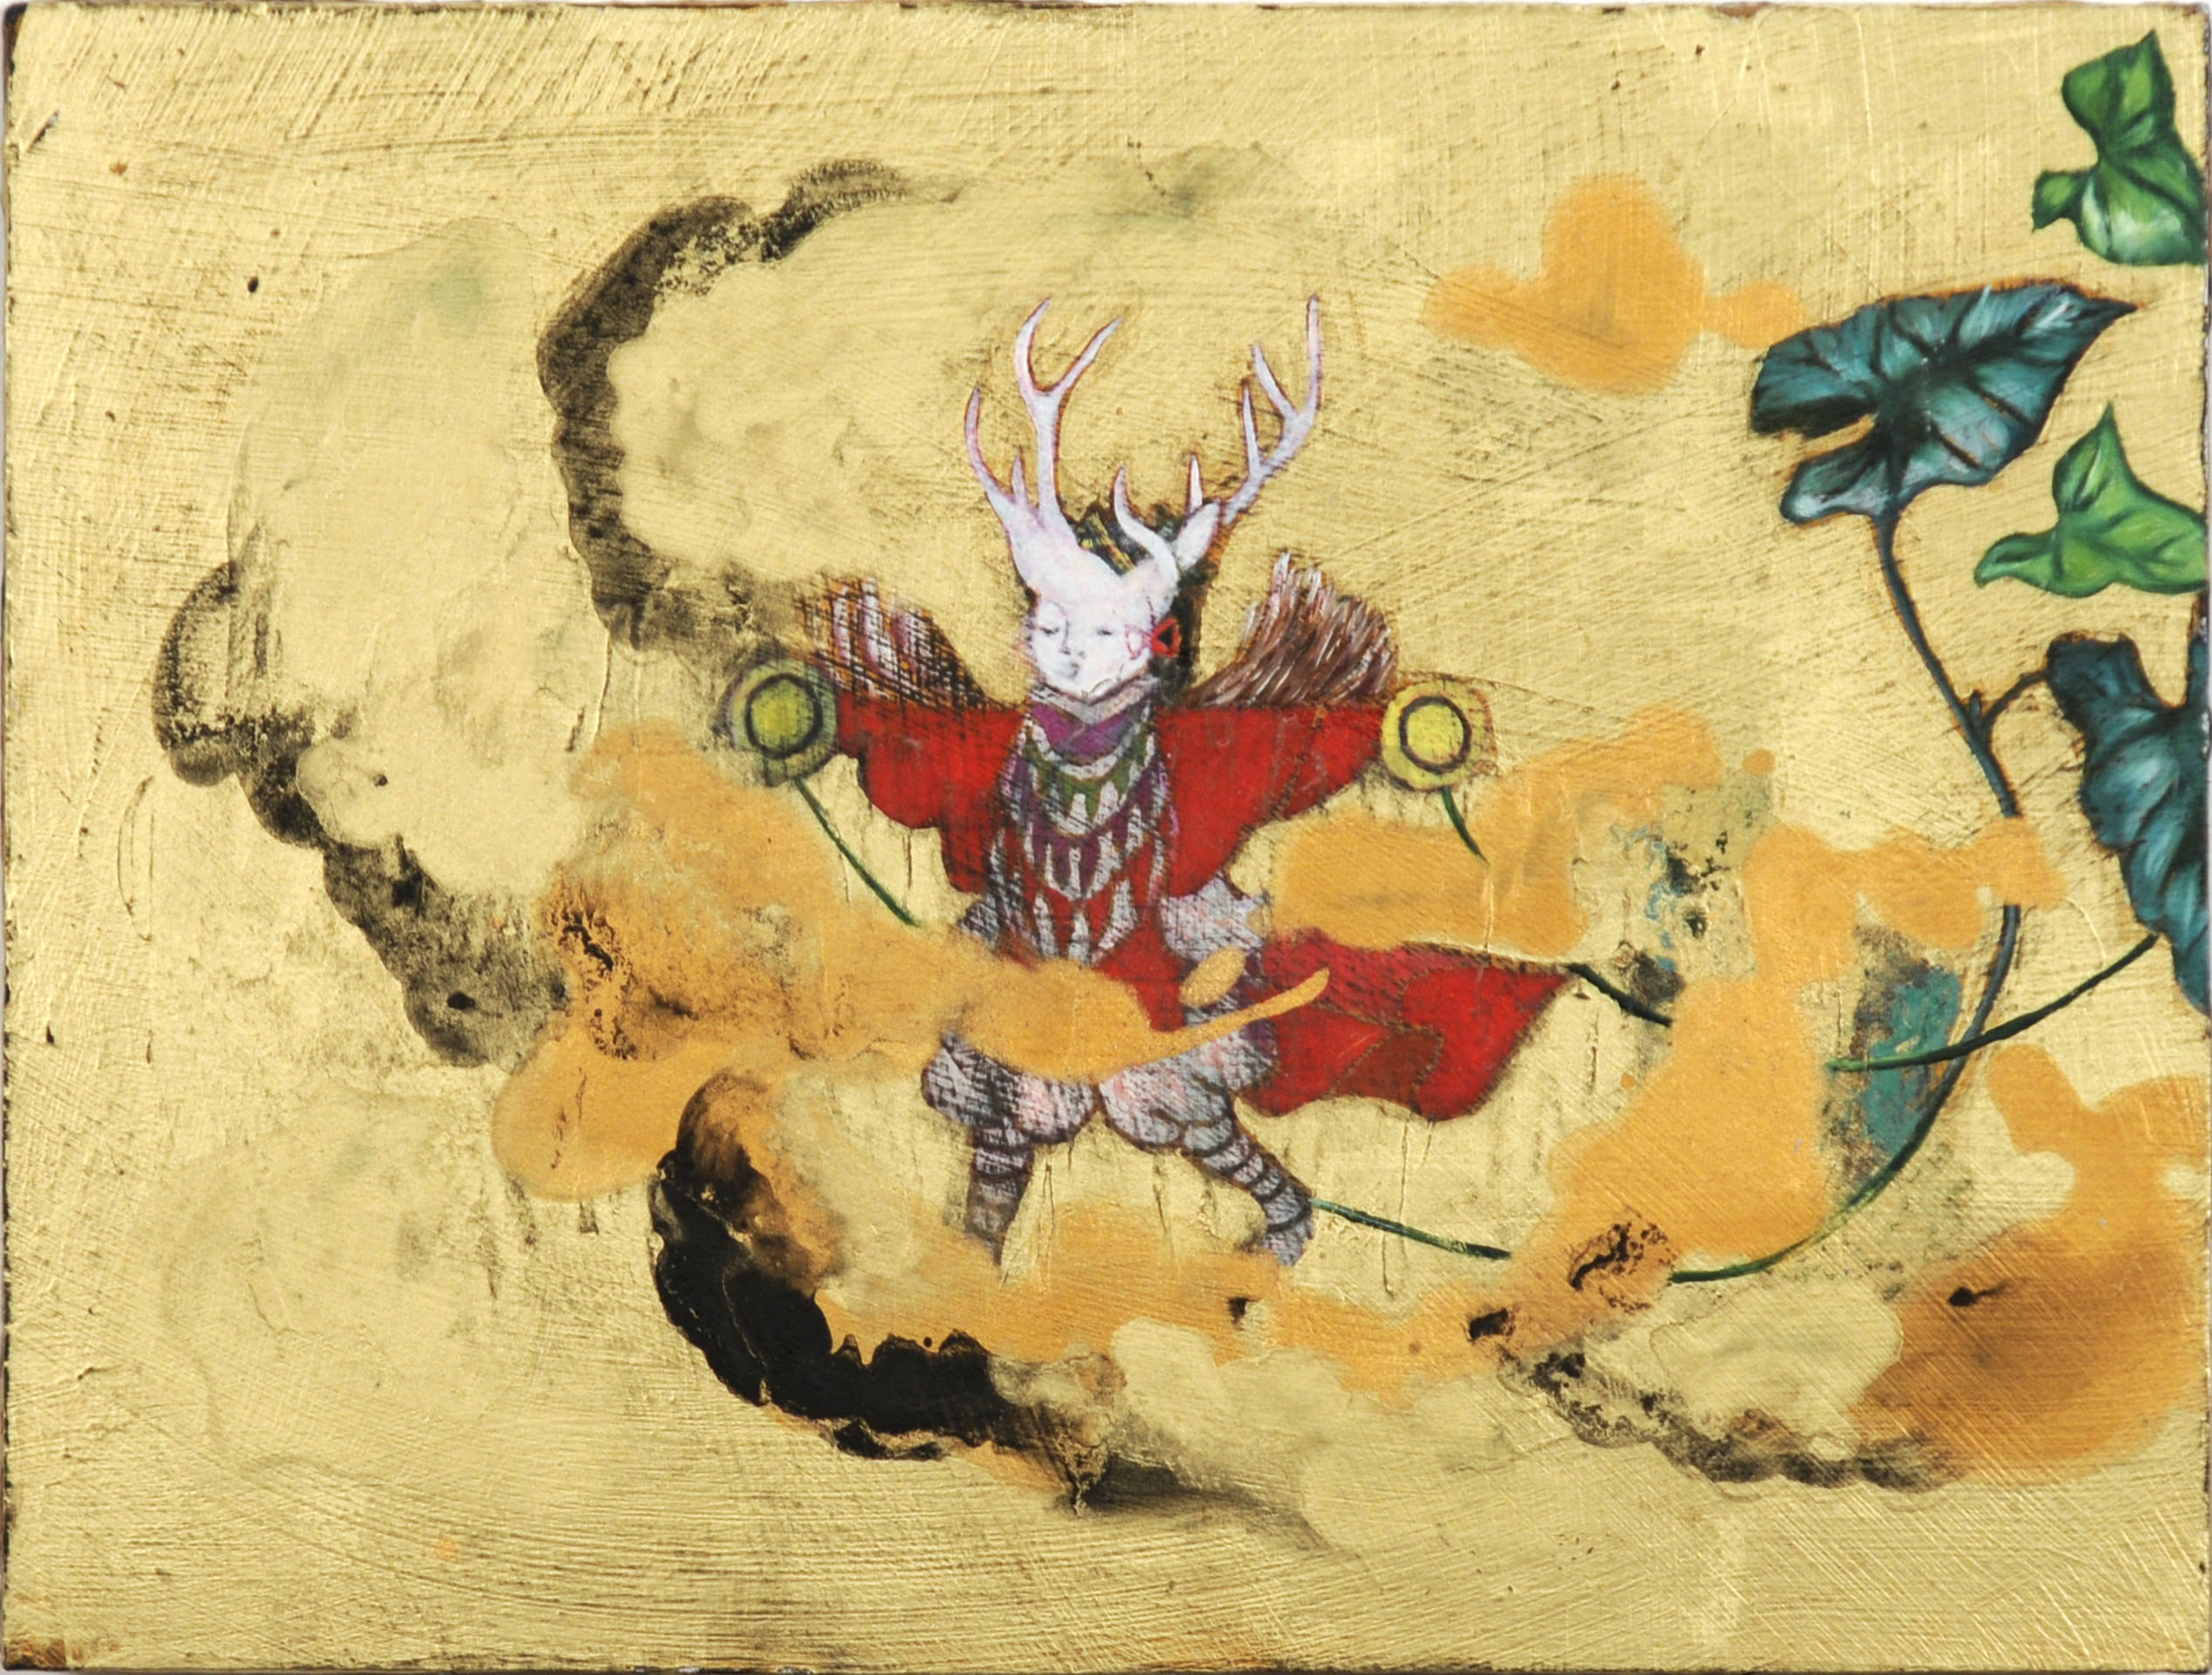 White Deer God,2011, oil and acrylic on board 19.5 x 26 cm